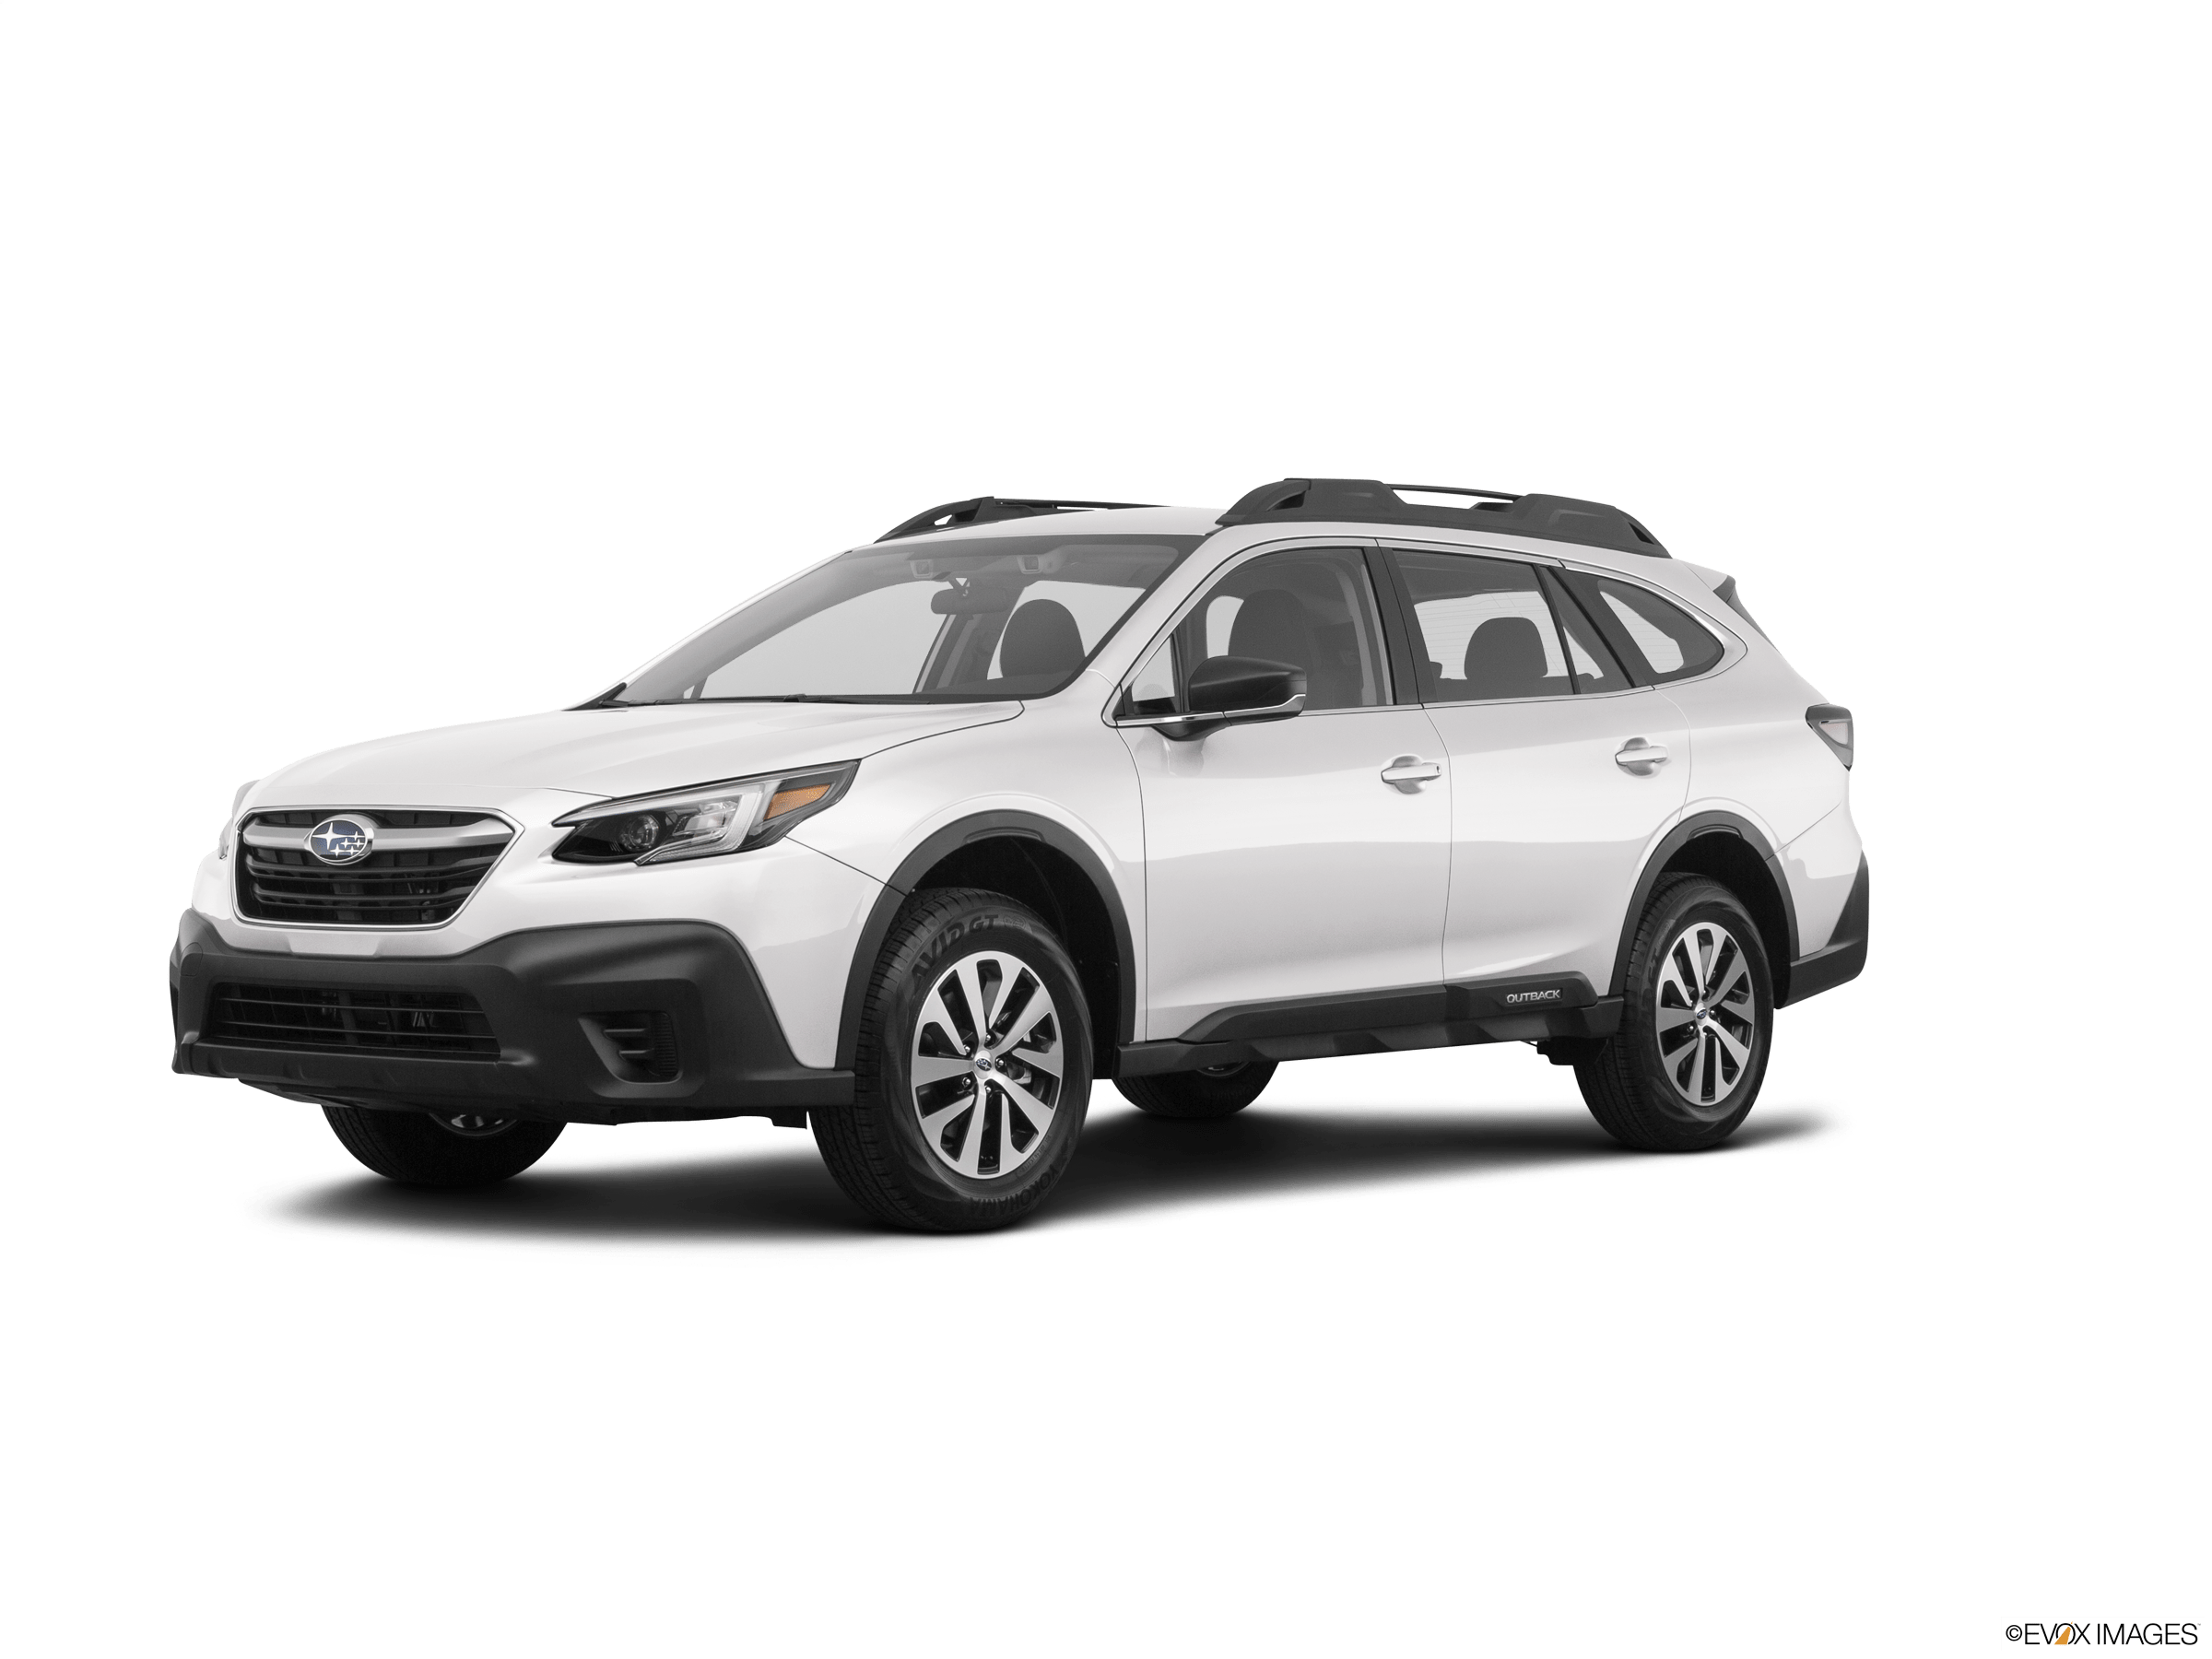 Lease 2021 Subaru Outback in New York, New Jersey, Pennsylvania